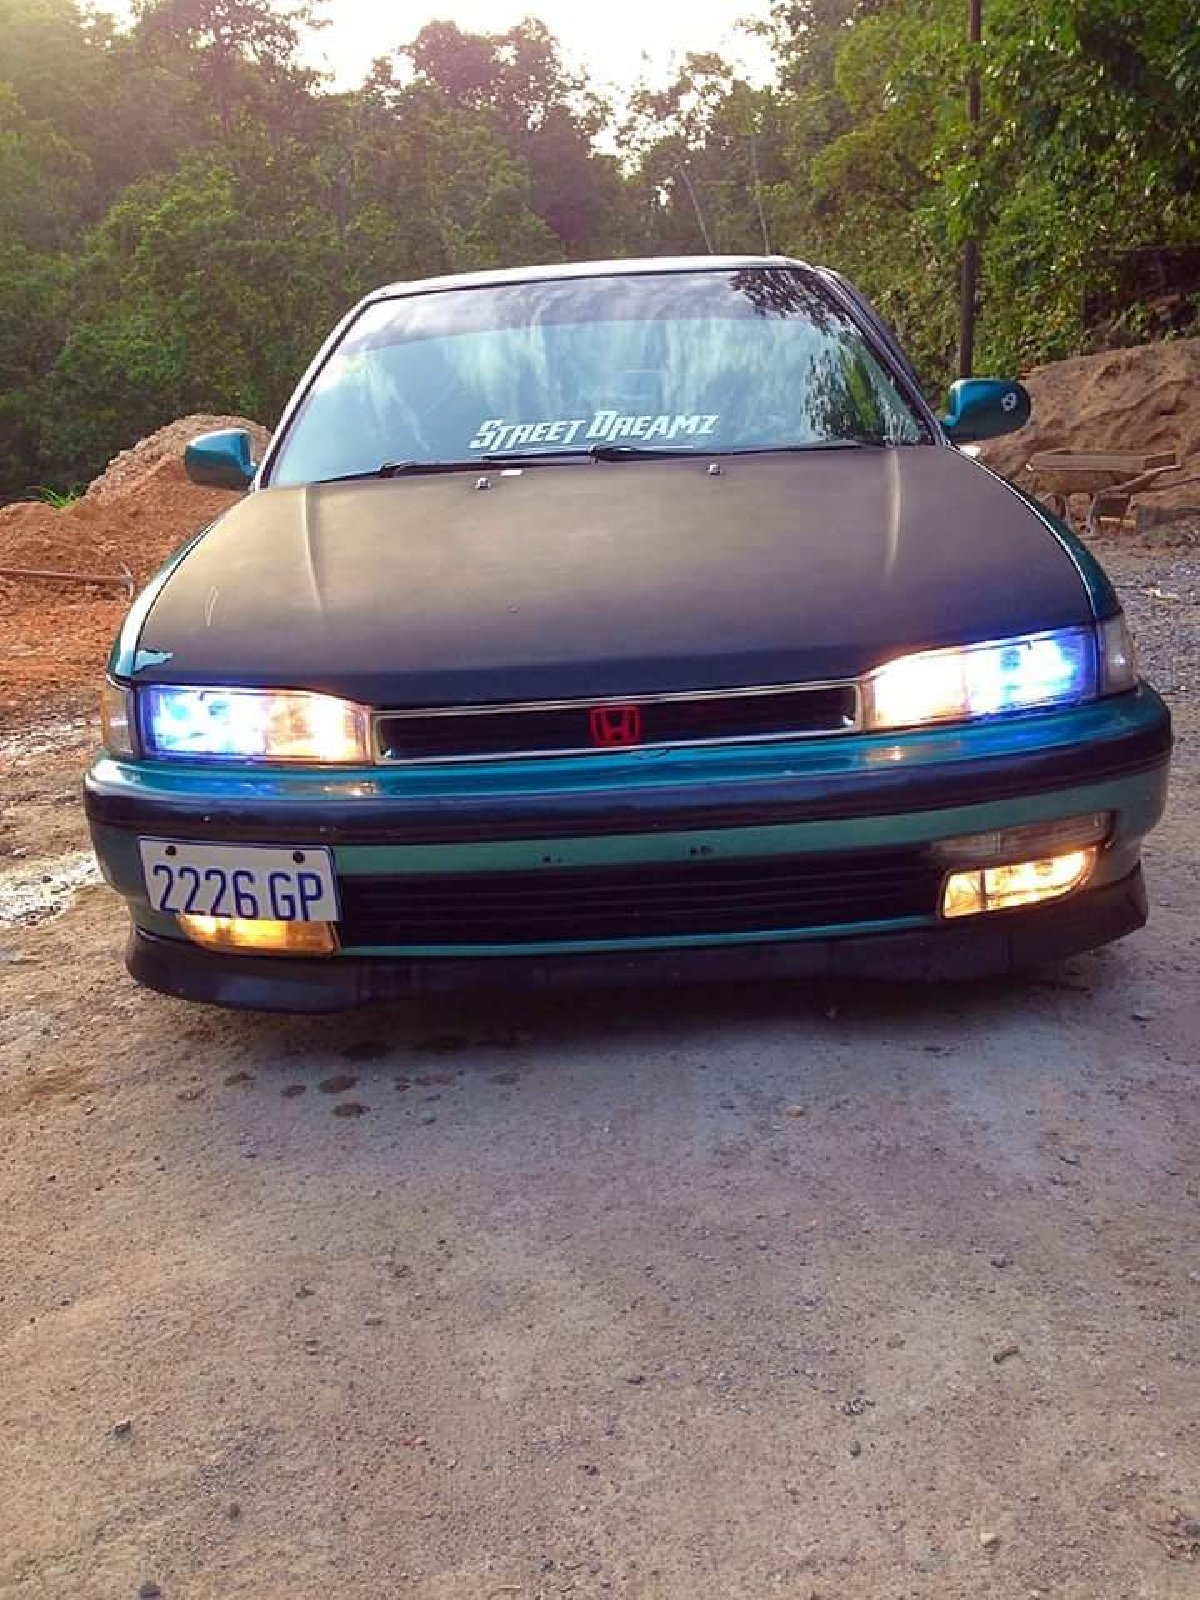 Cars For Sale In Jamaica >> 92 Honda Accord for sale in Waltham Kingston St Andrew - Cars